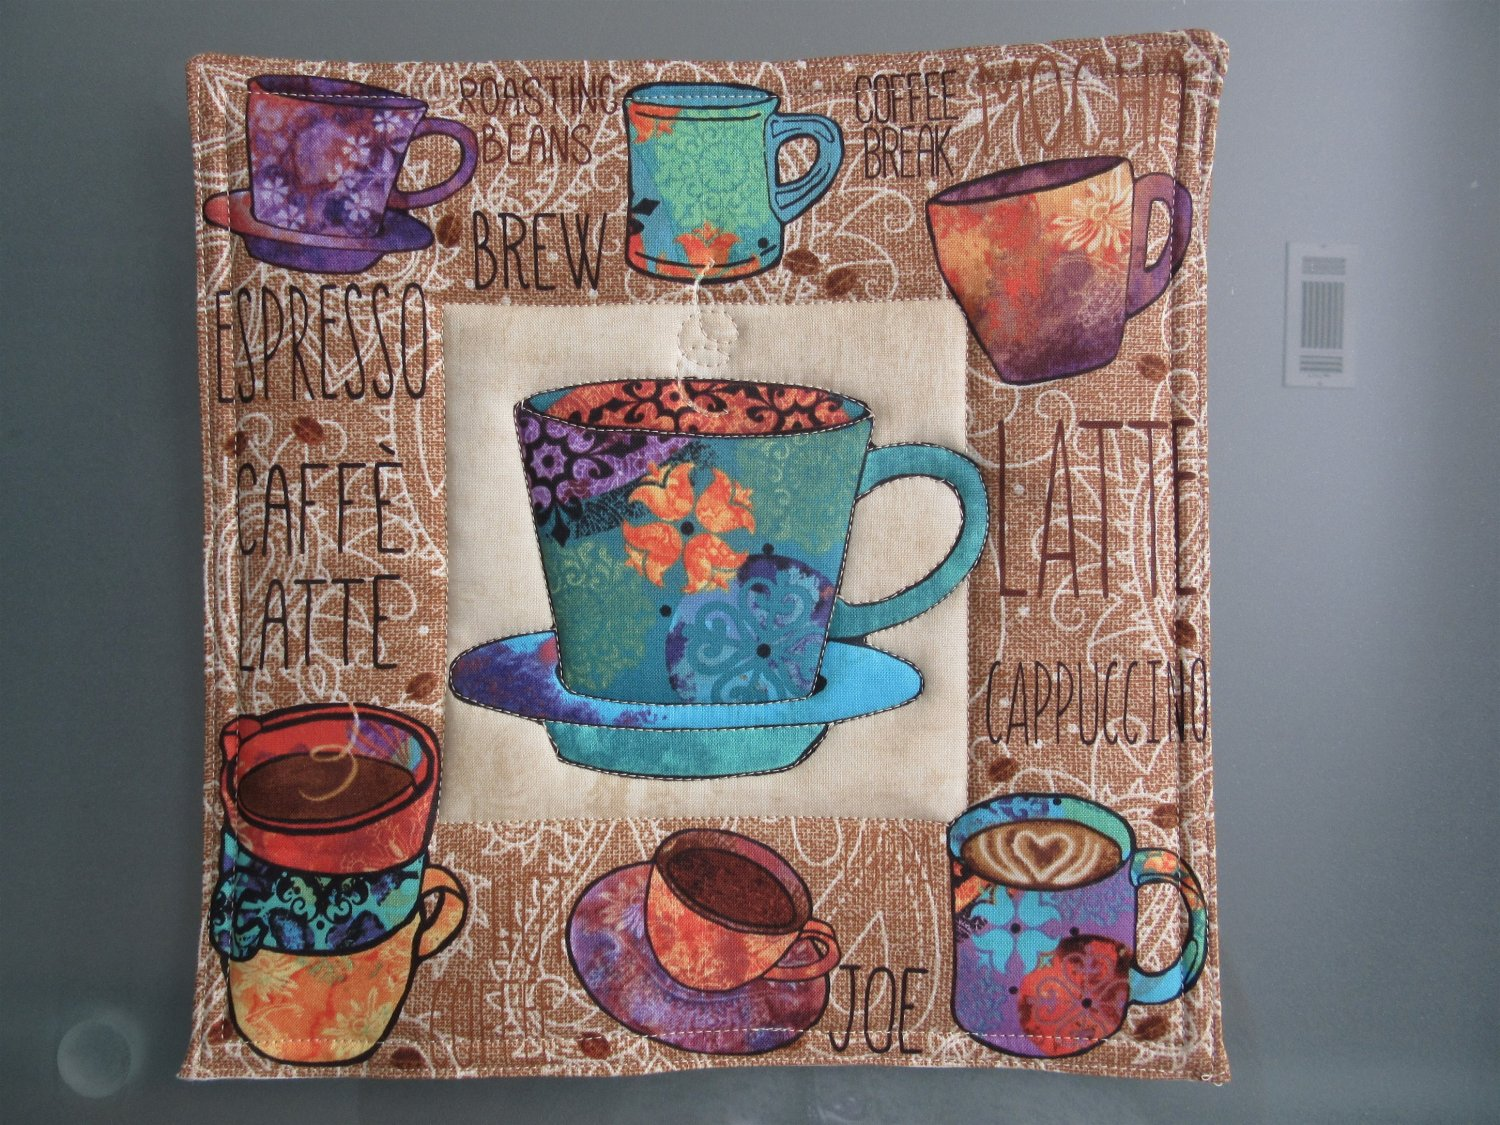 Use for Mug Rug, Pot Holder or Hot Mat - Handmade Turquoise Cup Print - sold single